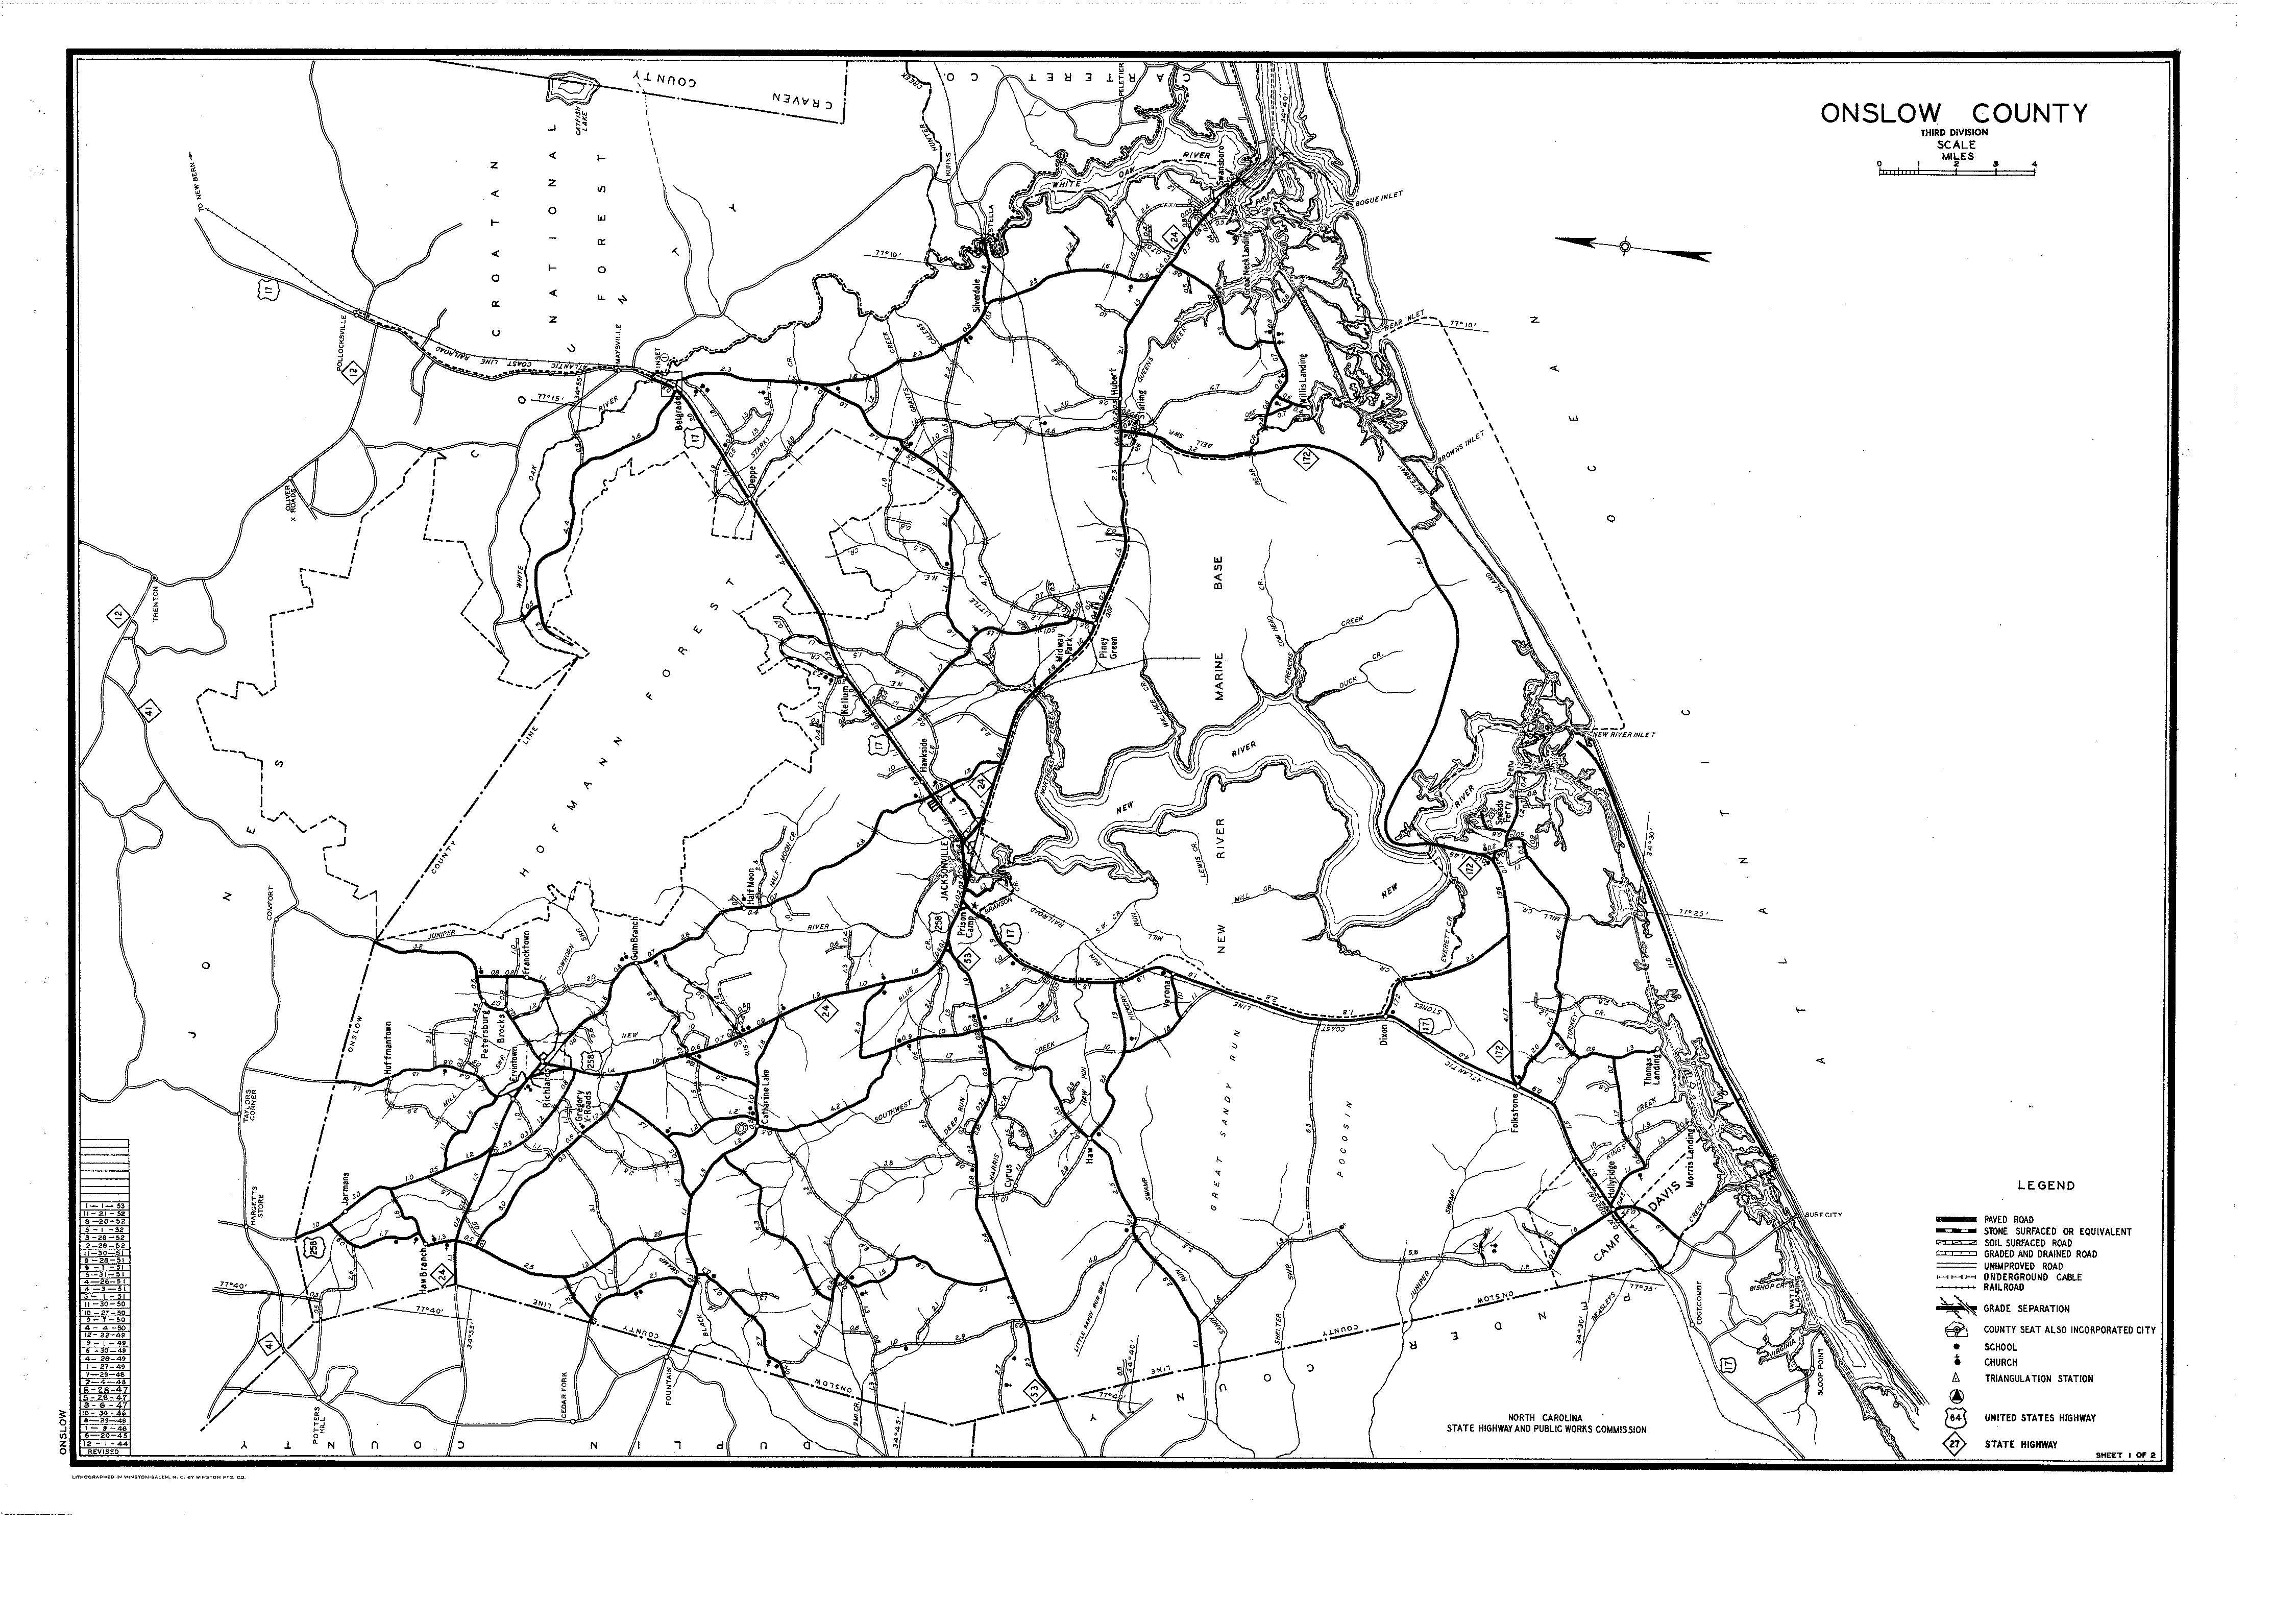 1953 County Highway Map